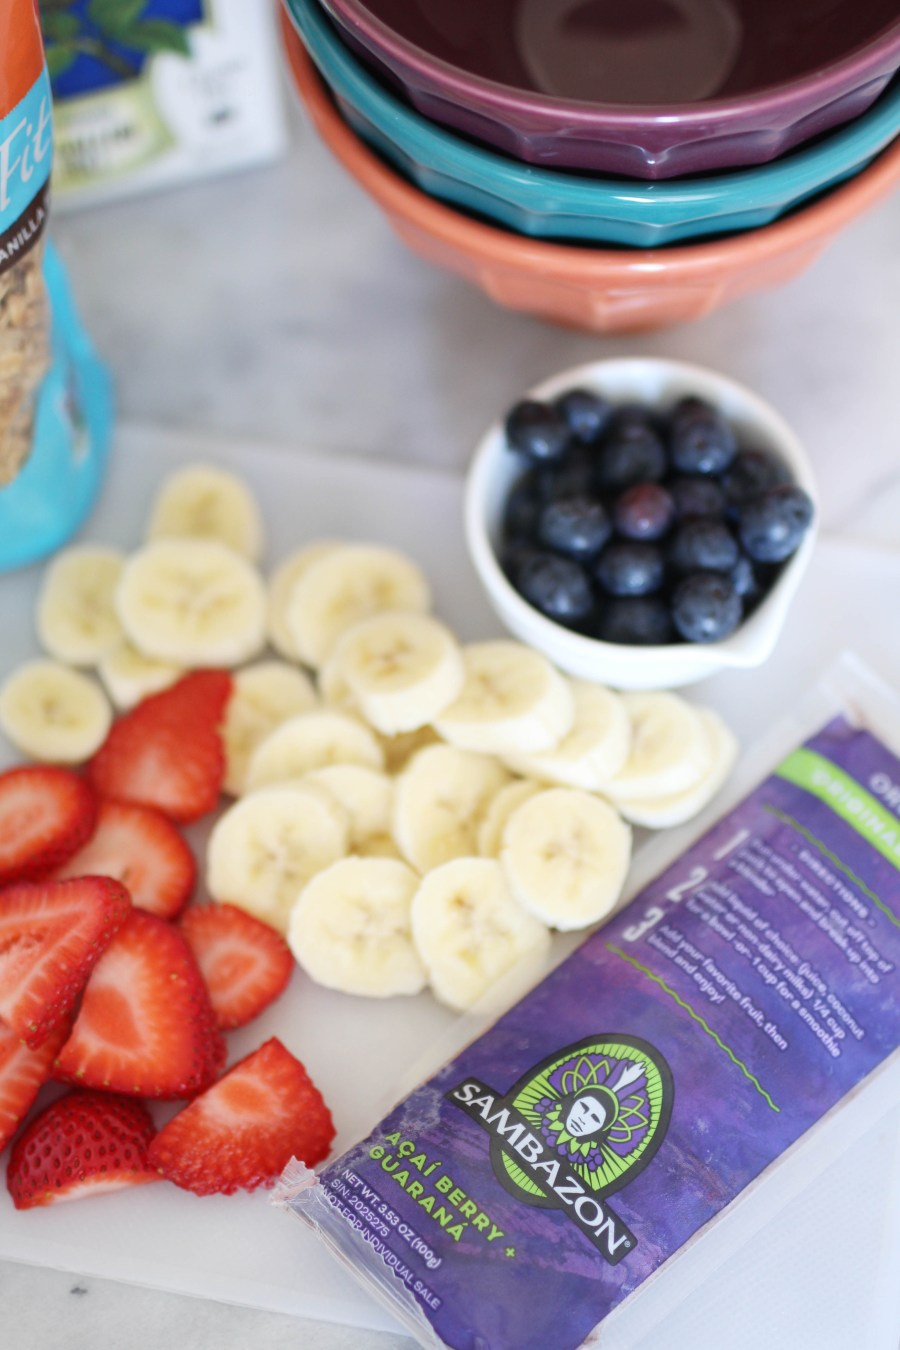 acai-bowl-ingredients